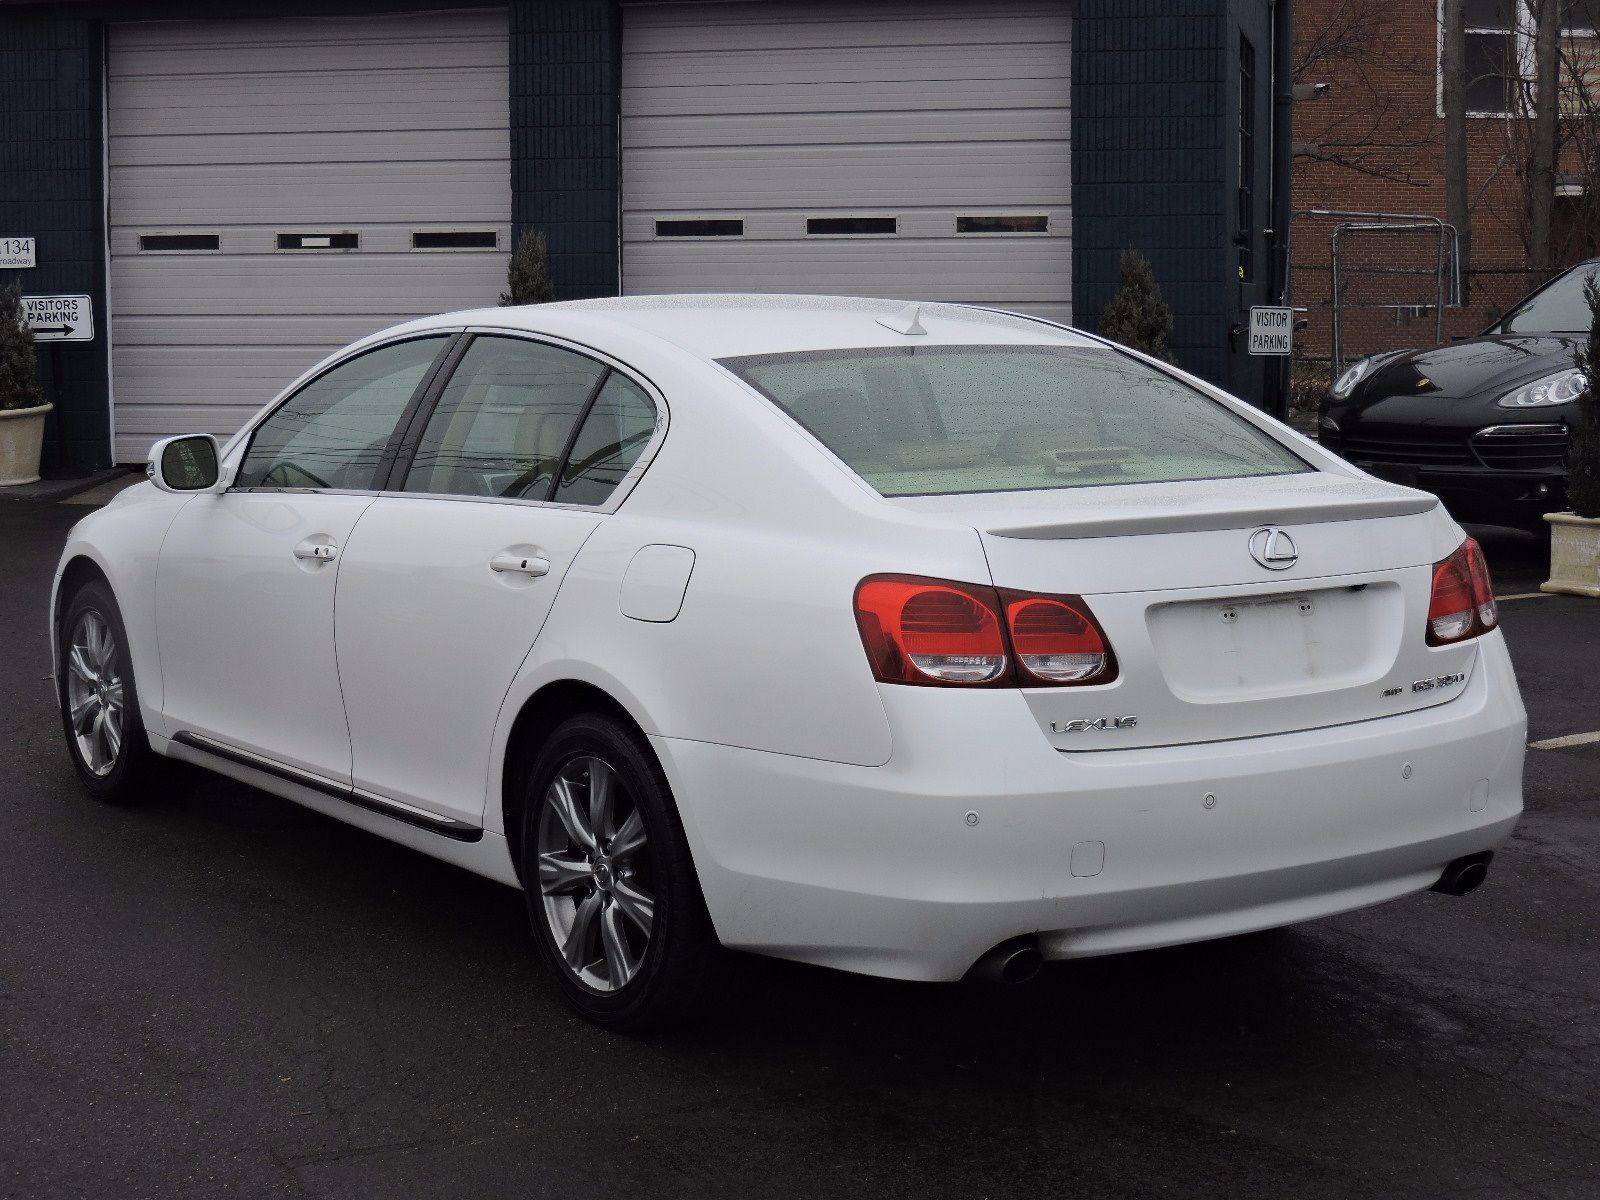 Used 2008 Lexus GS 350 x at Saugus Auto Mall